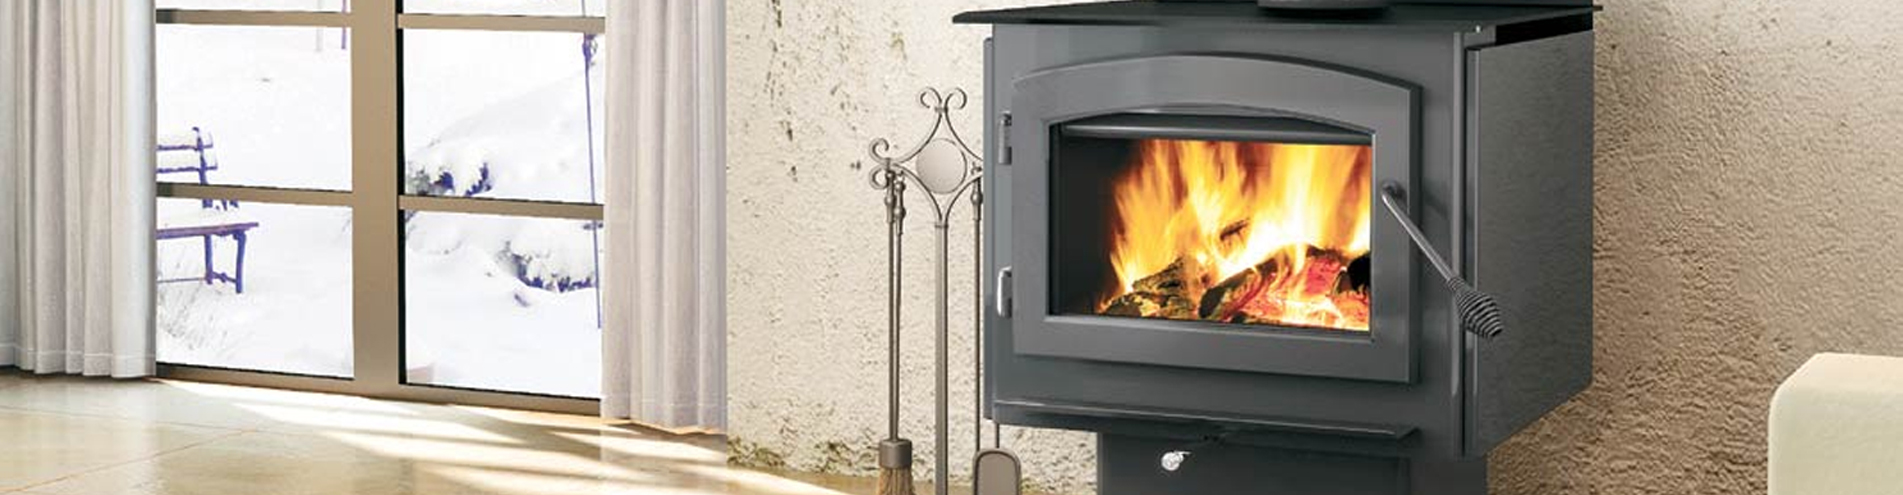 Wood Stoves - Nick's Fireplace Outfitters